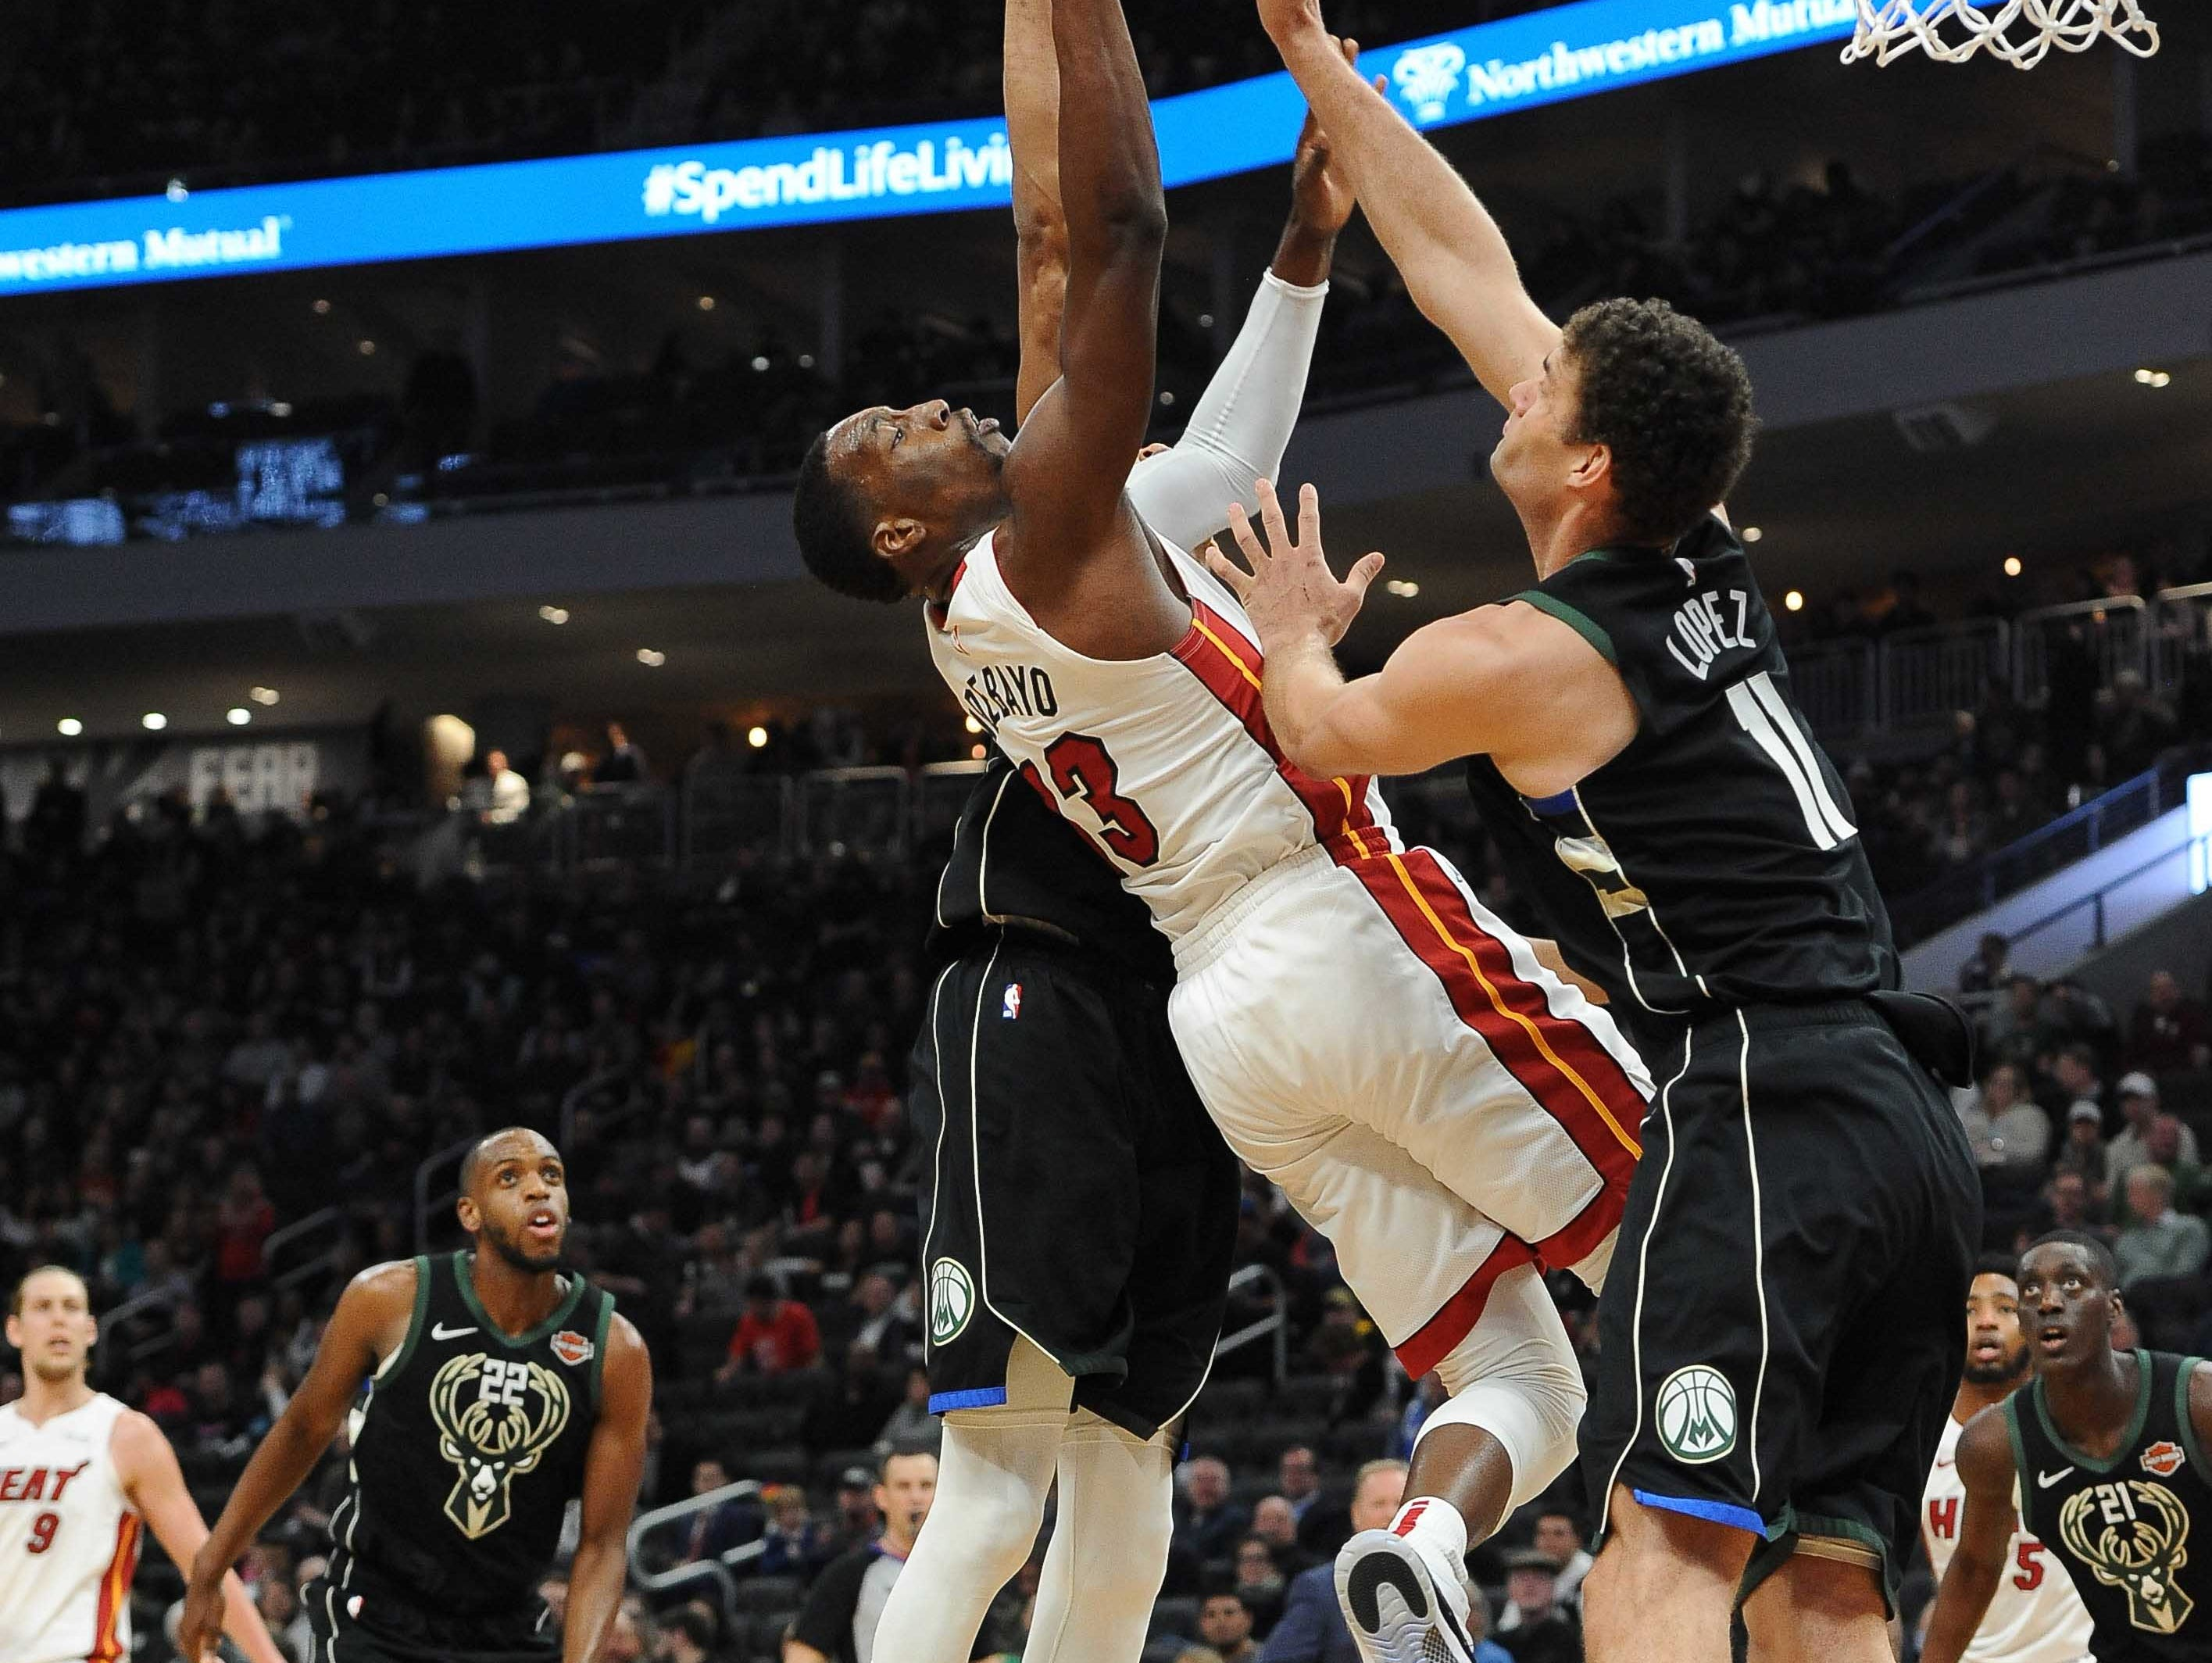 Heat center Bam Adebayo is fouled as he goes to the basket against Brook Lopez (right) and Giannis Antetokoumpo of the Bucks during the third quarter.